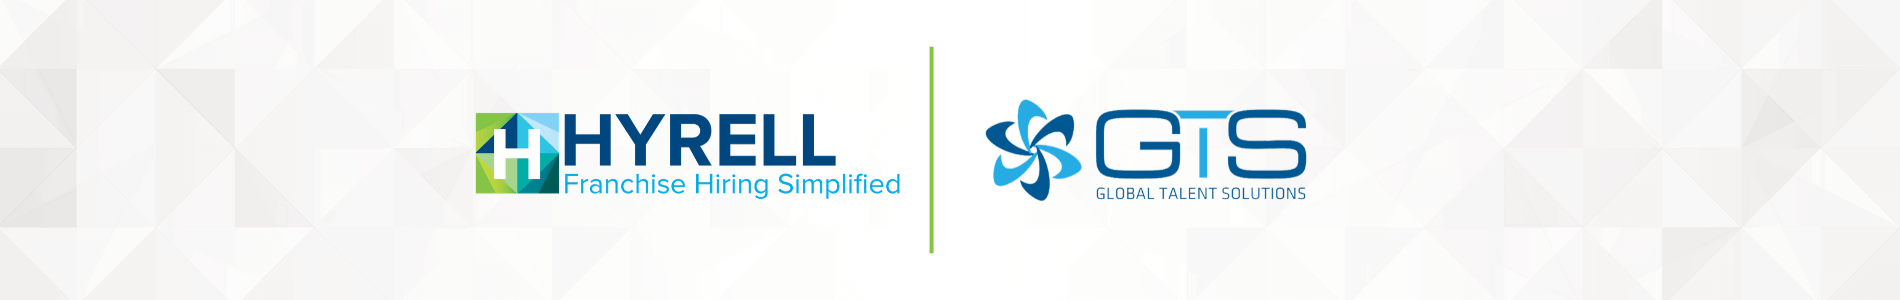 Hyrell Teams Up with Global Talent Solutions to Support Franchise Industry's Hiring Needs